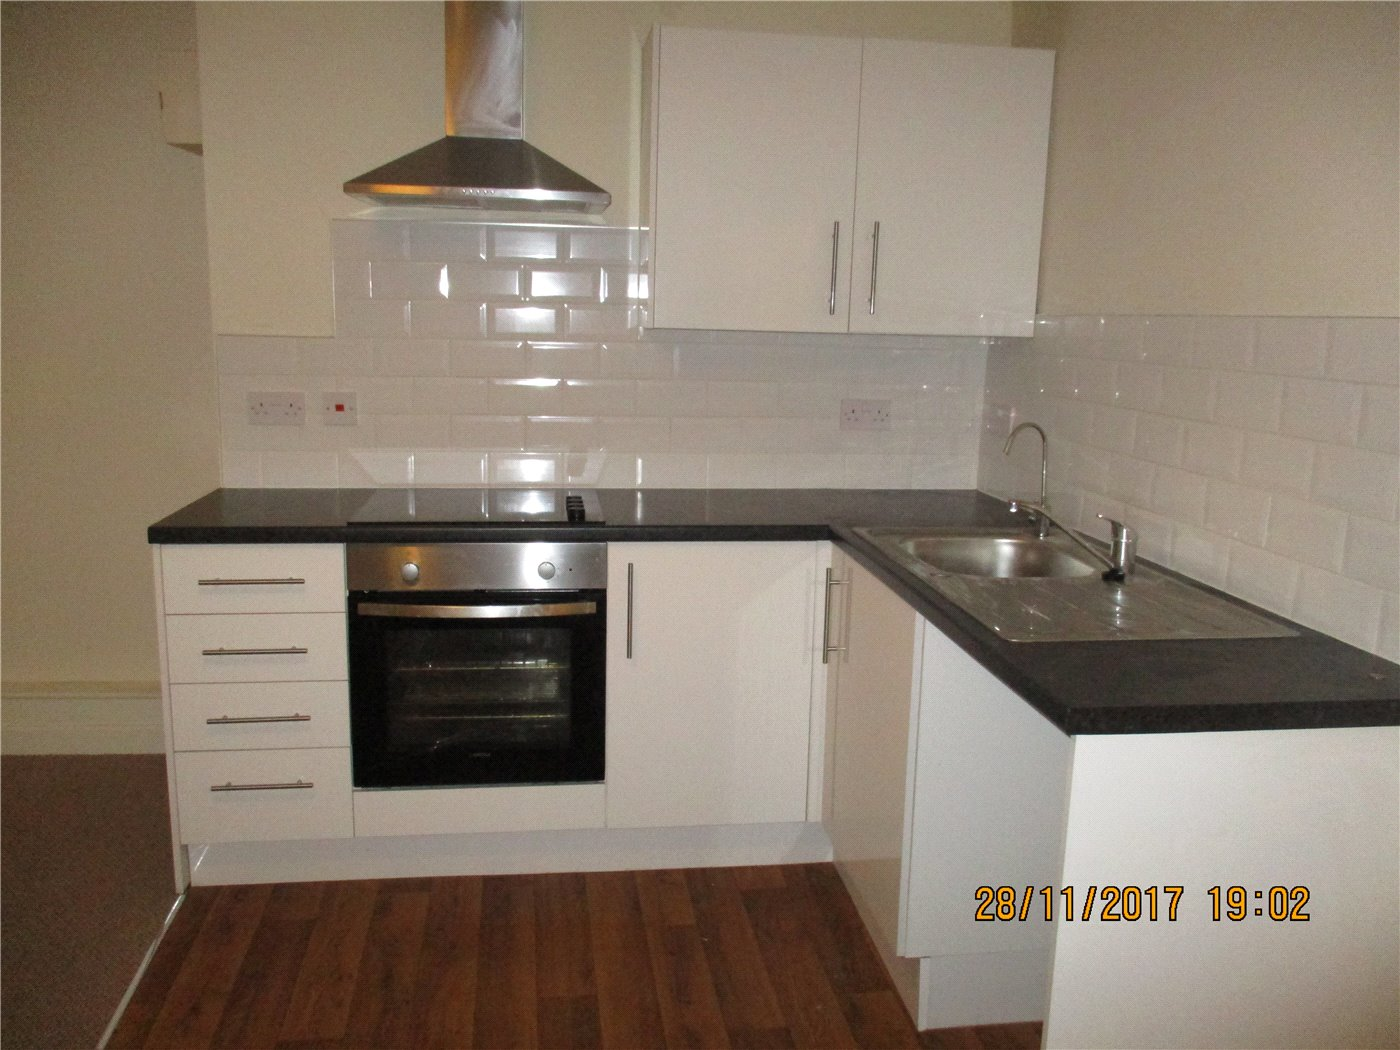 2 Bedrooms Flat for rent in Wharf Road, Grantham, NG31